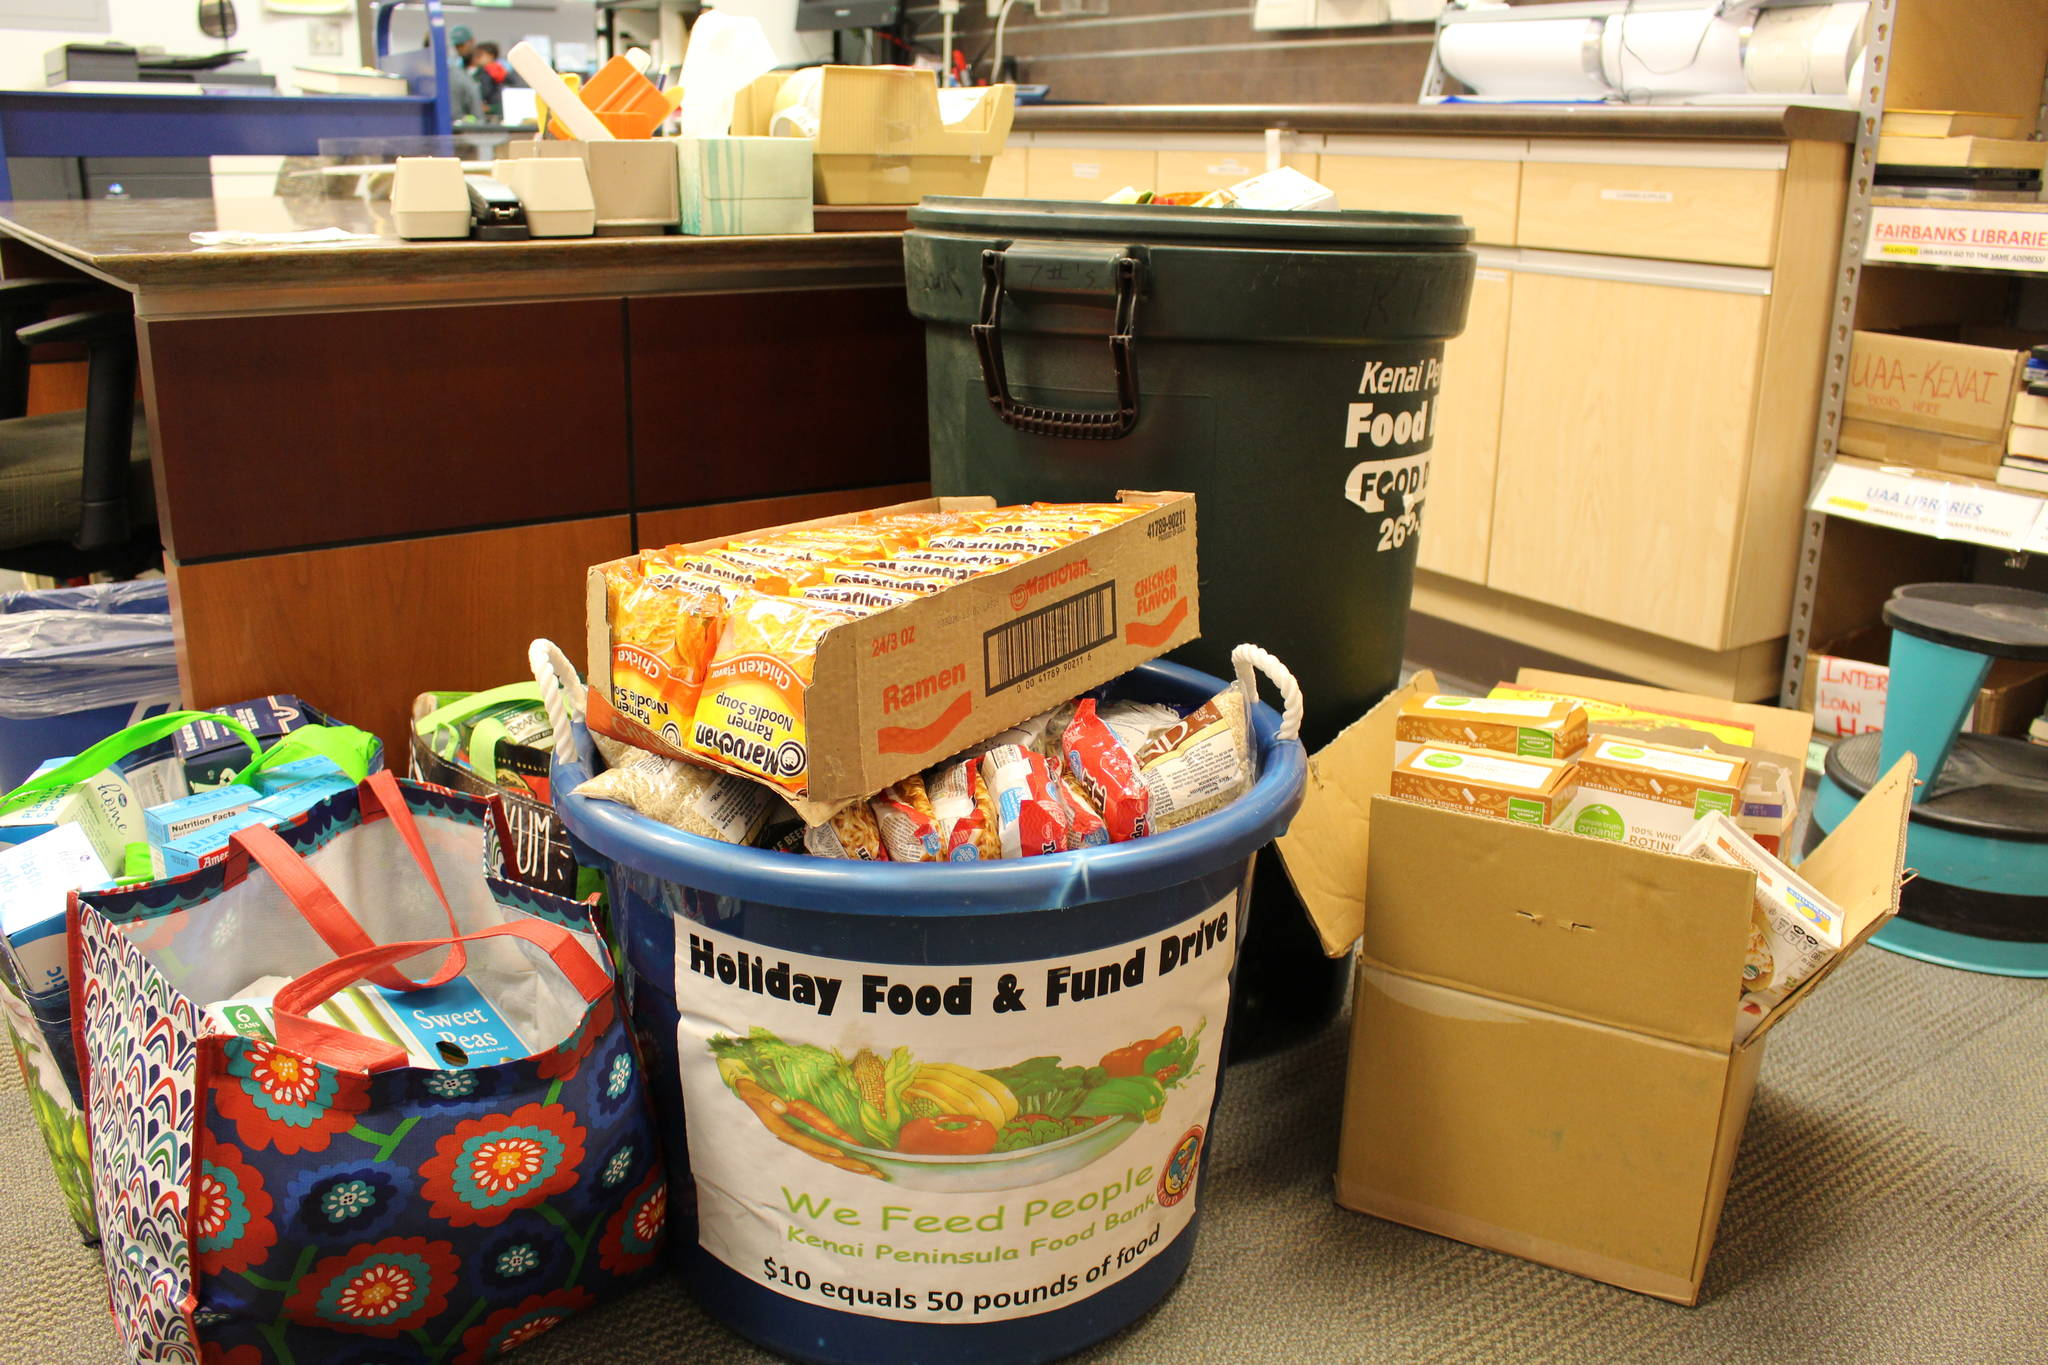 Food to be donated to the Kenai Peninsula Food Bank can be seen here at the Soldotna Public Library on Sept. 20, 2019. (Photo by Brian Mazurek/Peninsula Clarion)